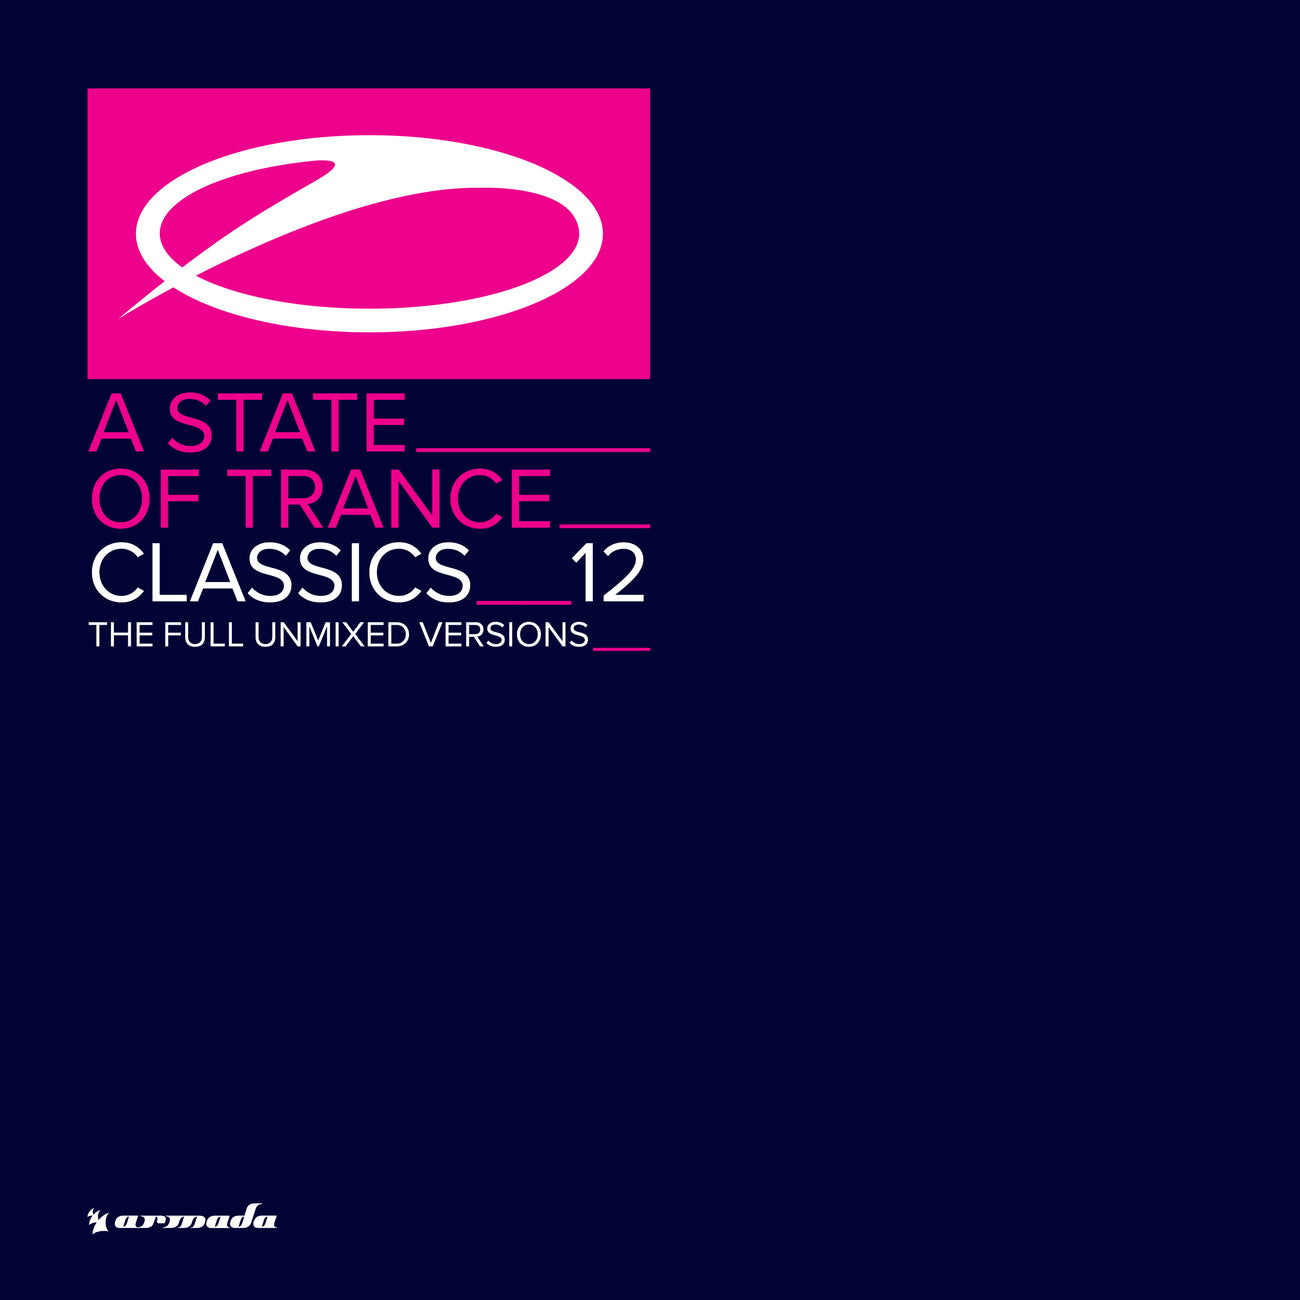 A State Of Trance Classics, Vol. 12